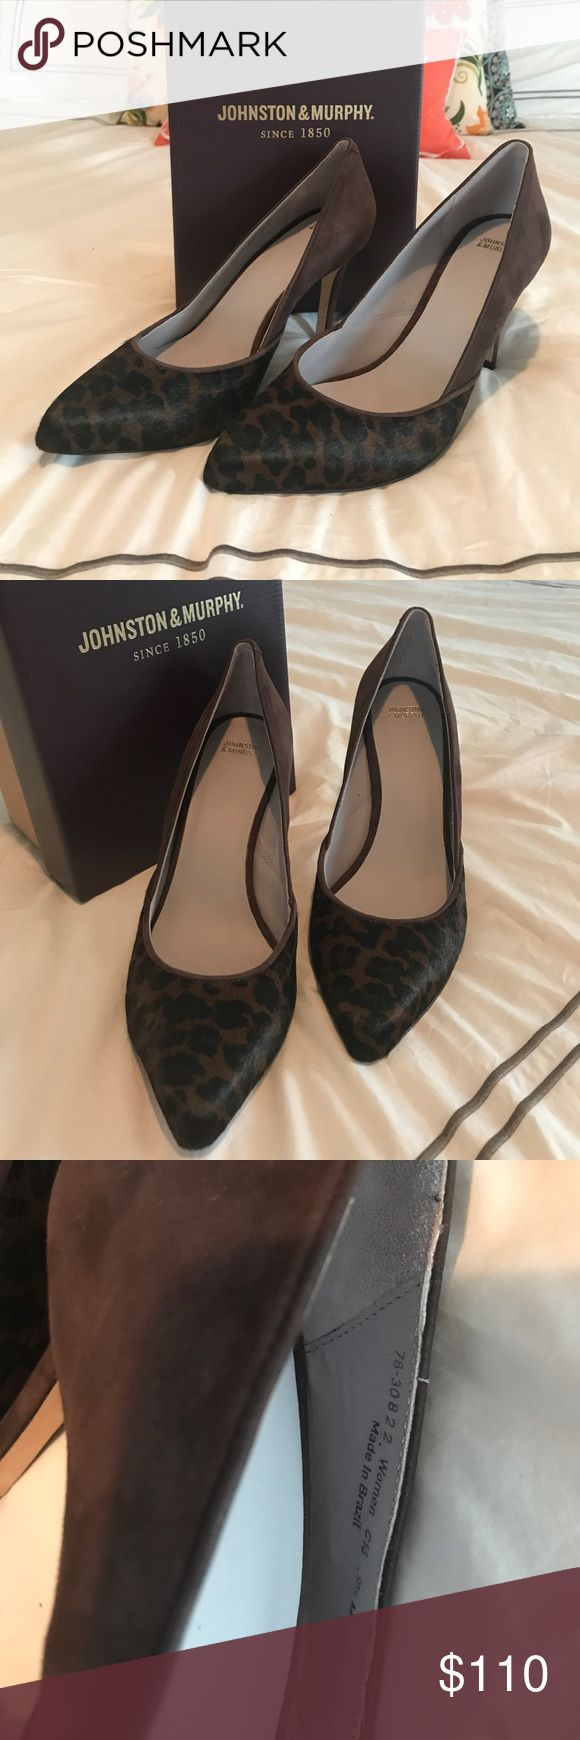 """Johnston & Murphy Vanessa Pump Never Worn - pristine condition, For a classic silhouette that's timeless yet versatile, step into the Vanessa from Johnston & Murphy. This pointed toe pump goes with absolutely anything! FEATURES:  Embossed suede and calf hair. Pointed toe, water resistant, Cushioned insole, 3"""" covered heel, Leather sole.  Original box, smoke free home.  Color:  Dark Brown Suede Johnston & Murphy Shoes Heels"""